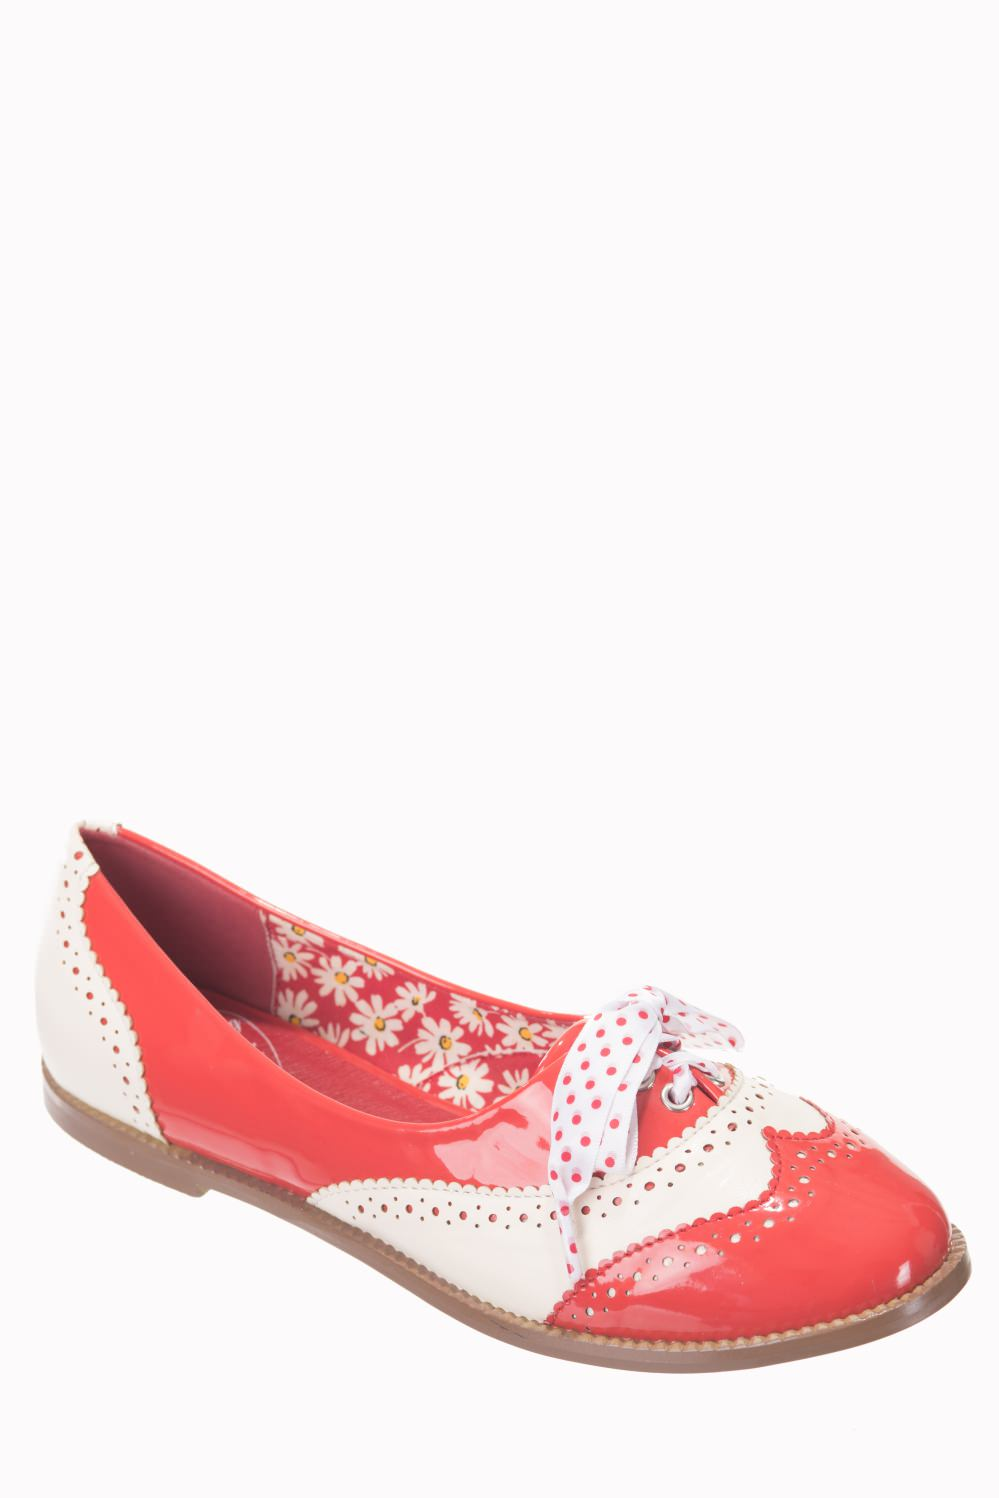 Dancing Days Milana 60s Brogue Red Cream Shoes